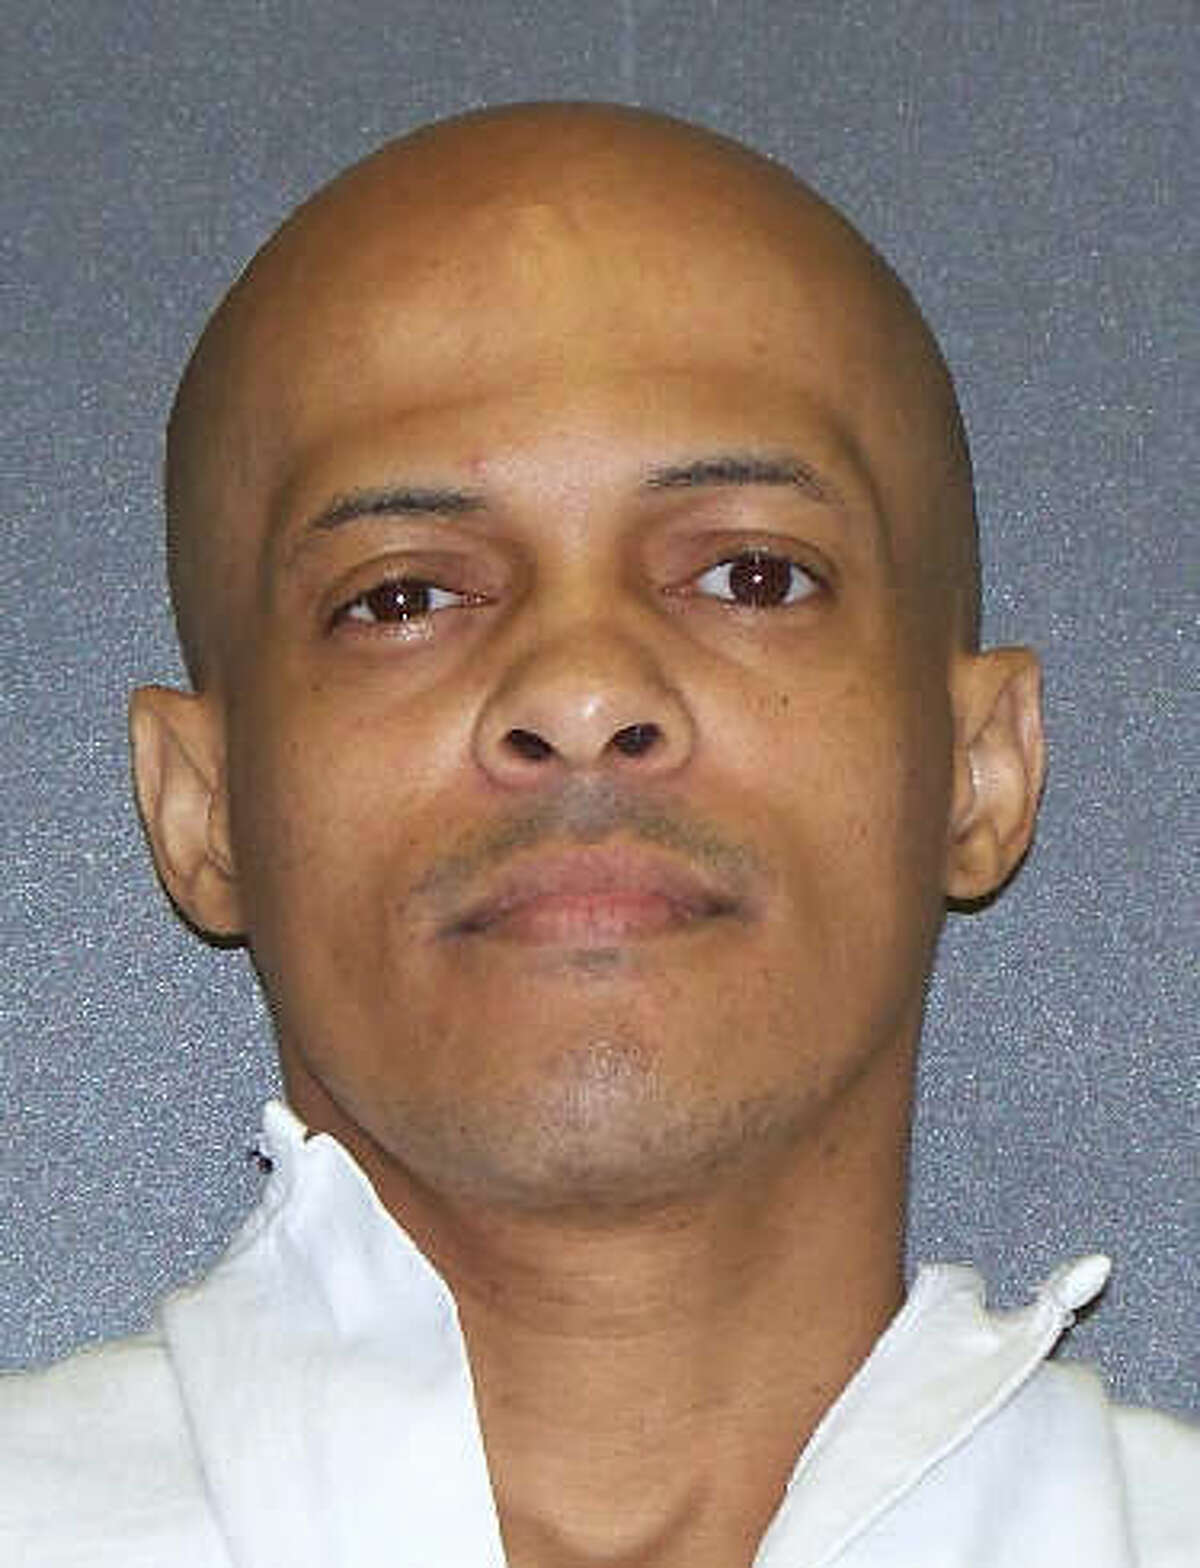 Robert James Campbell was convicted of the murder of a 20-year-old Houston woman.